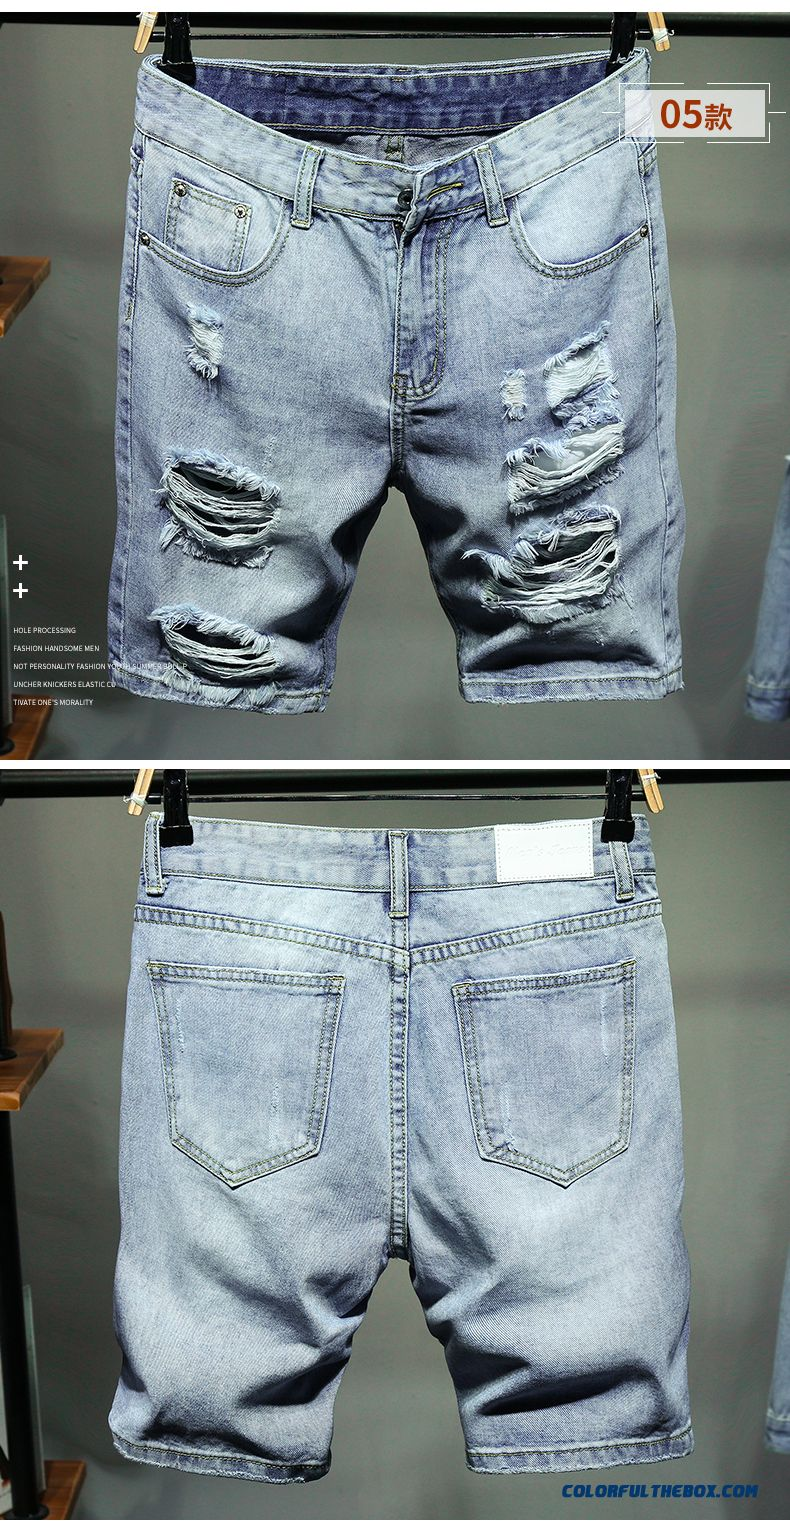 Trend Skinny Blue Straight Men's Short Pants Leisure Shorts Summer Hole Loose - detail images